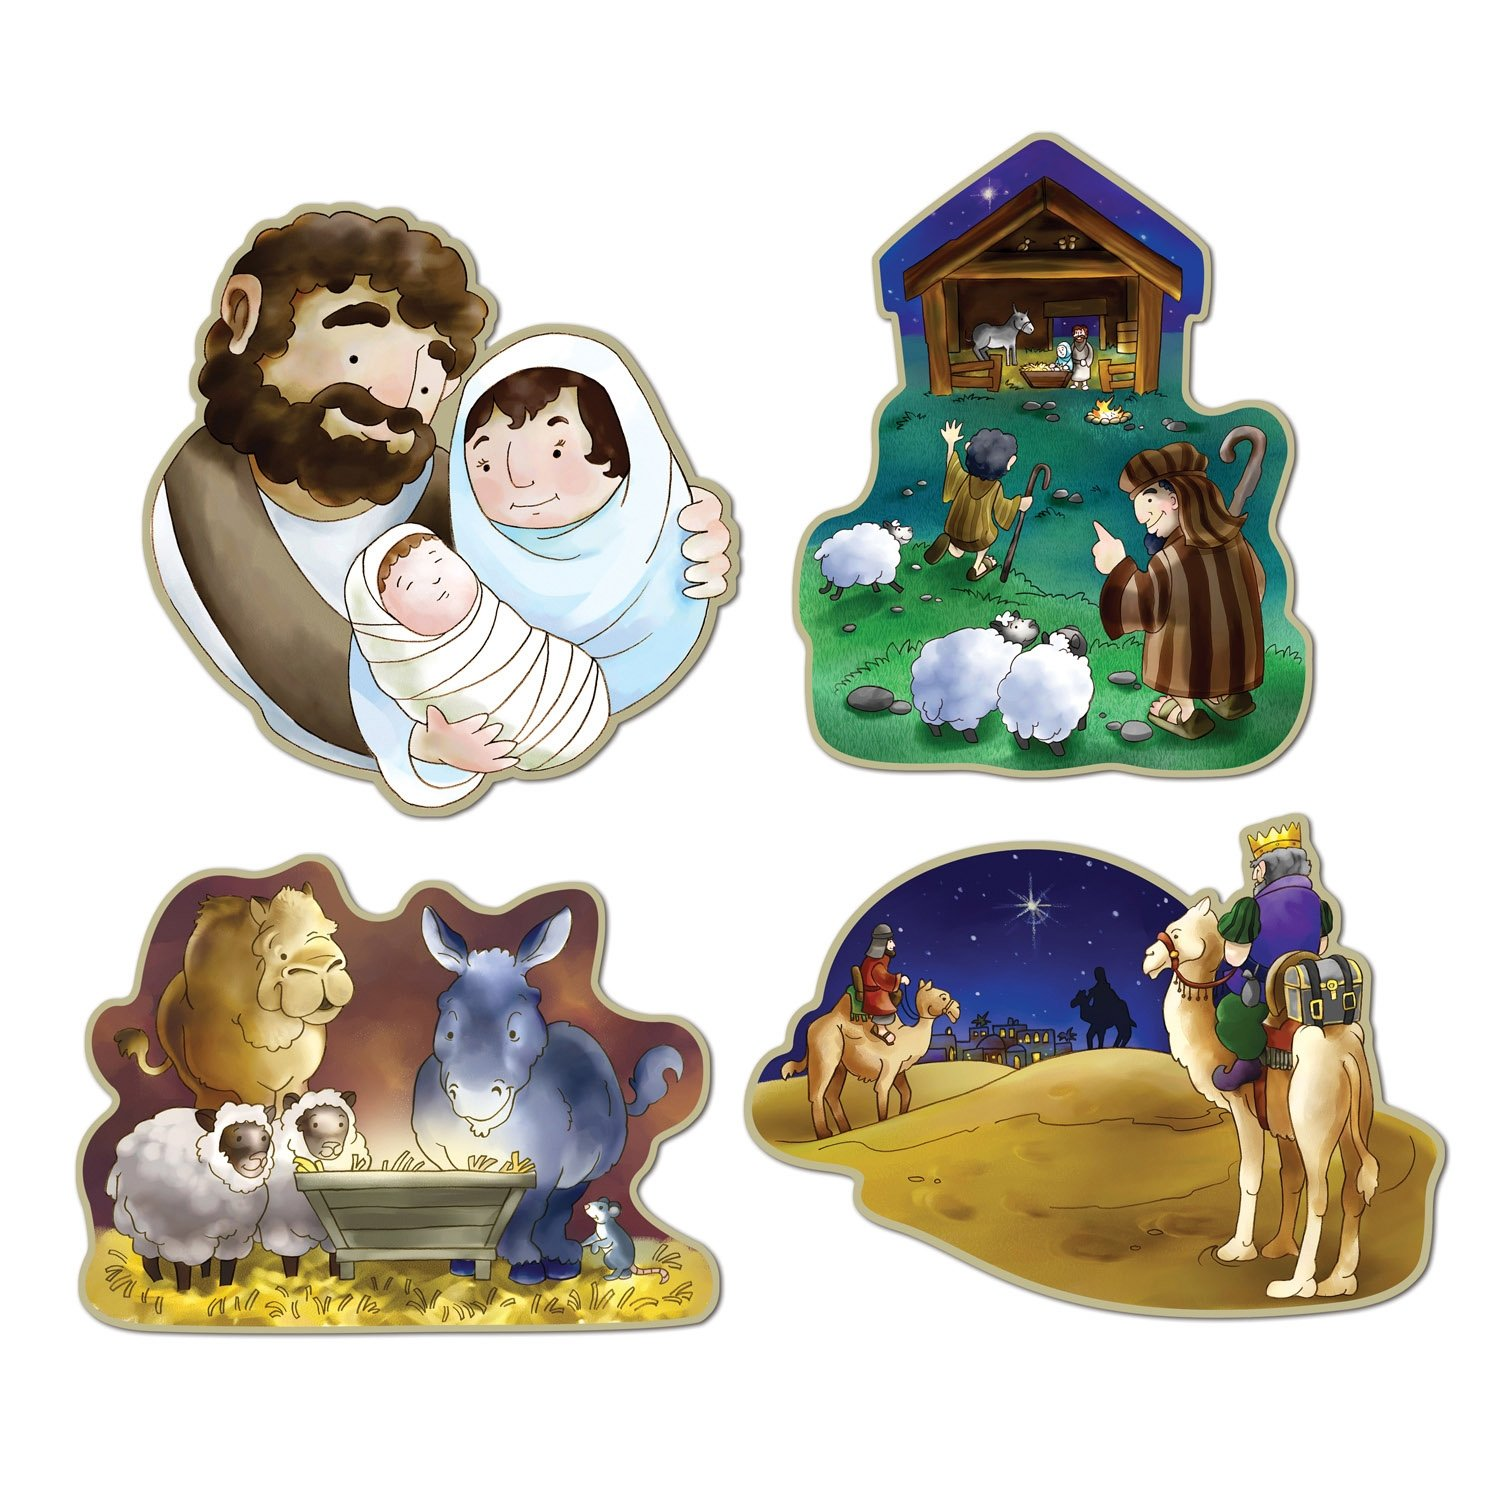 Beistle 4-Pack Nativity Cutouts, 16-Inch The Beistle Company 22270